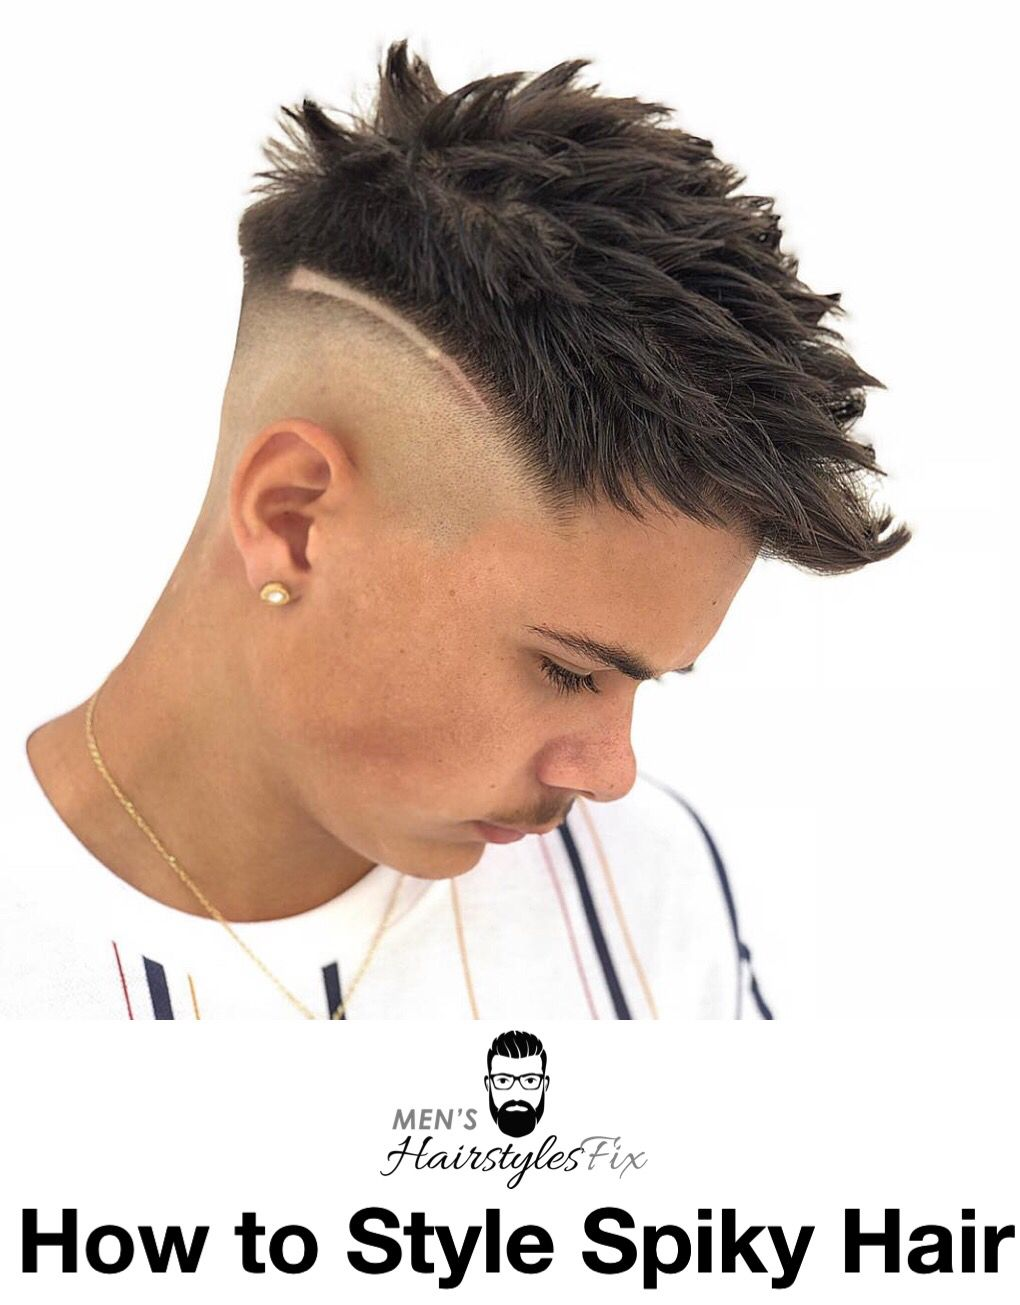 How to style spiky hair tips for achieving cool textured spikes